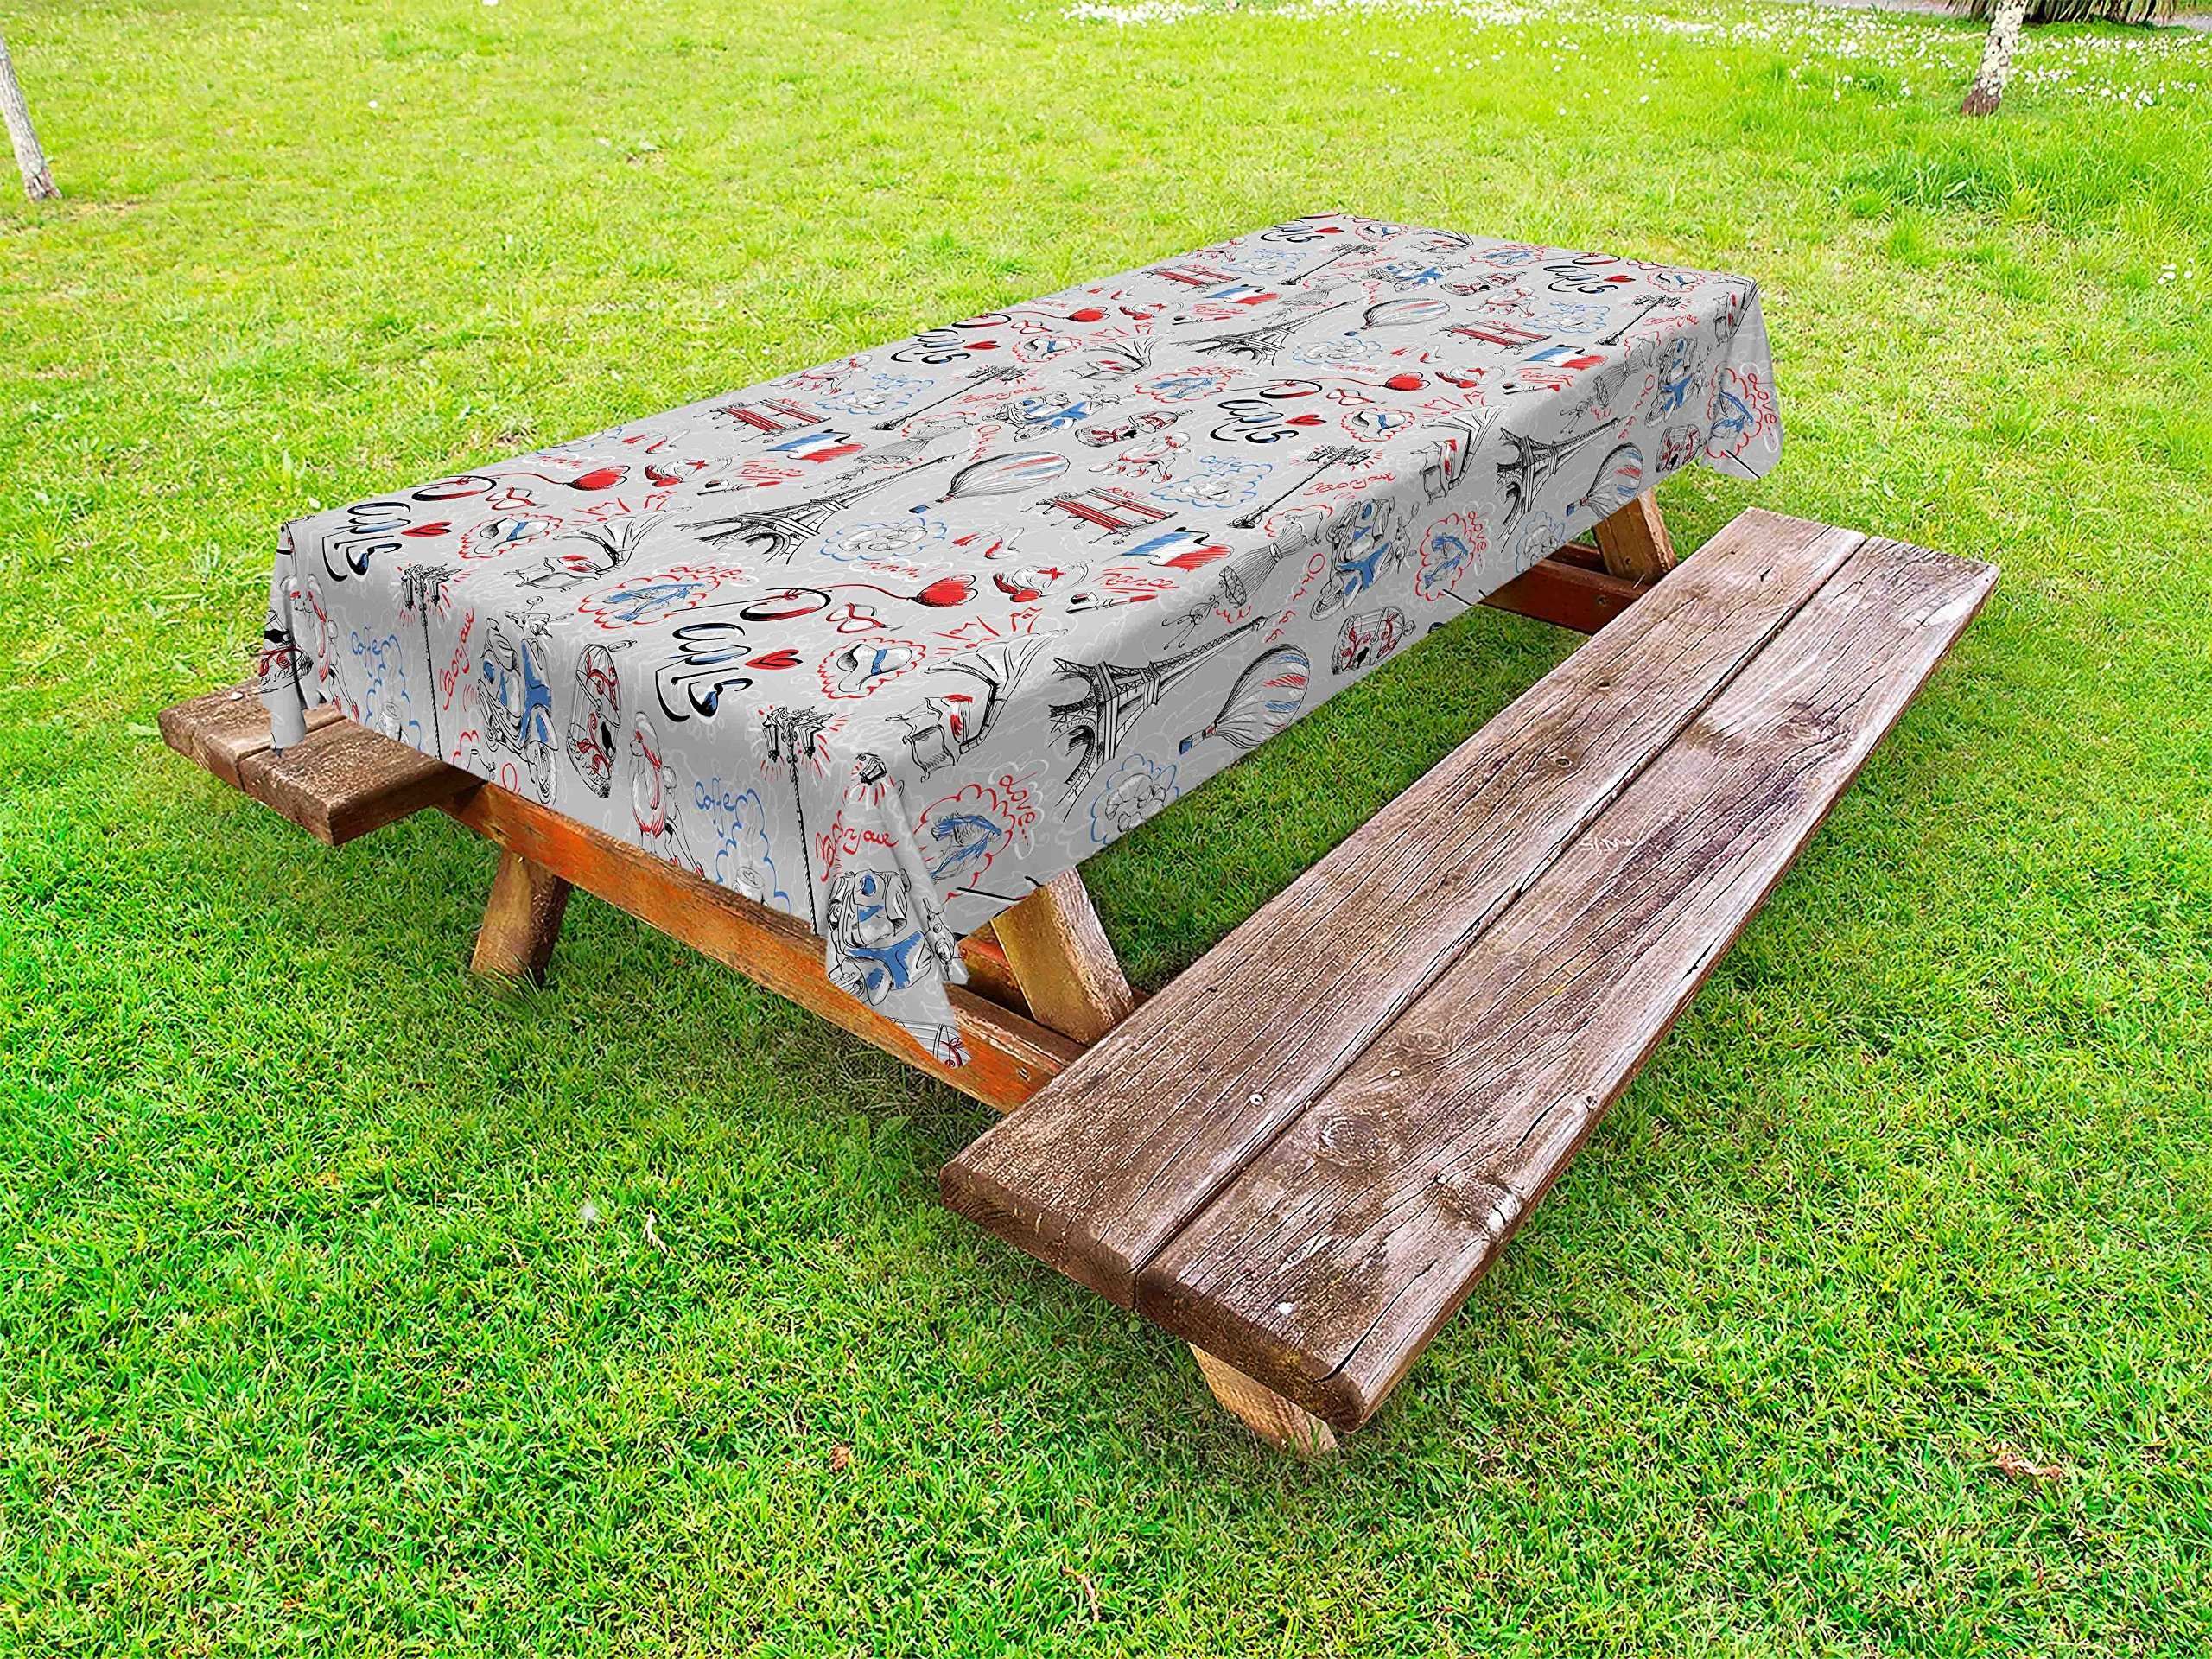 Ambesonne Paris Outdoor Tablecloth, France Themed Image with French Flag Dogs Eiffel Tower Croissant Vintage City of Love, Decorative Washable Picnic Table Cloth, 58 X 84 Inches, Multicolor